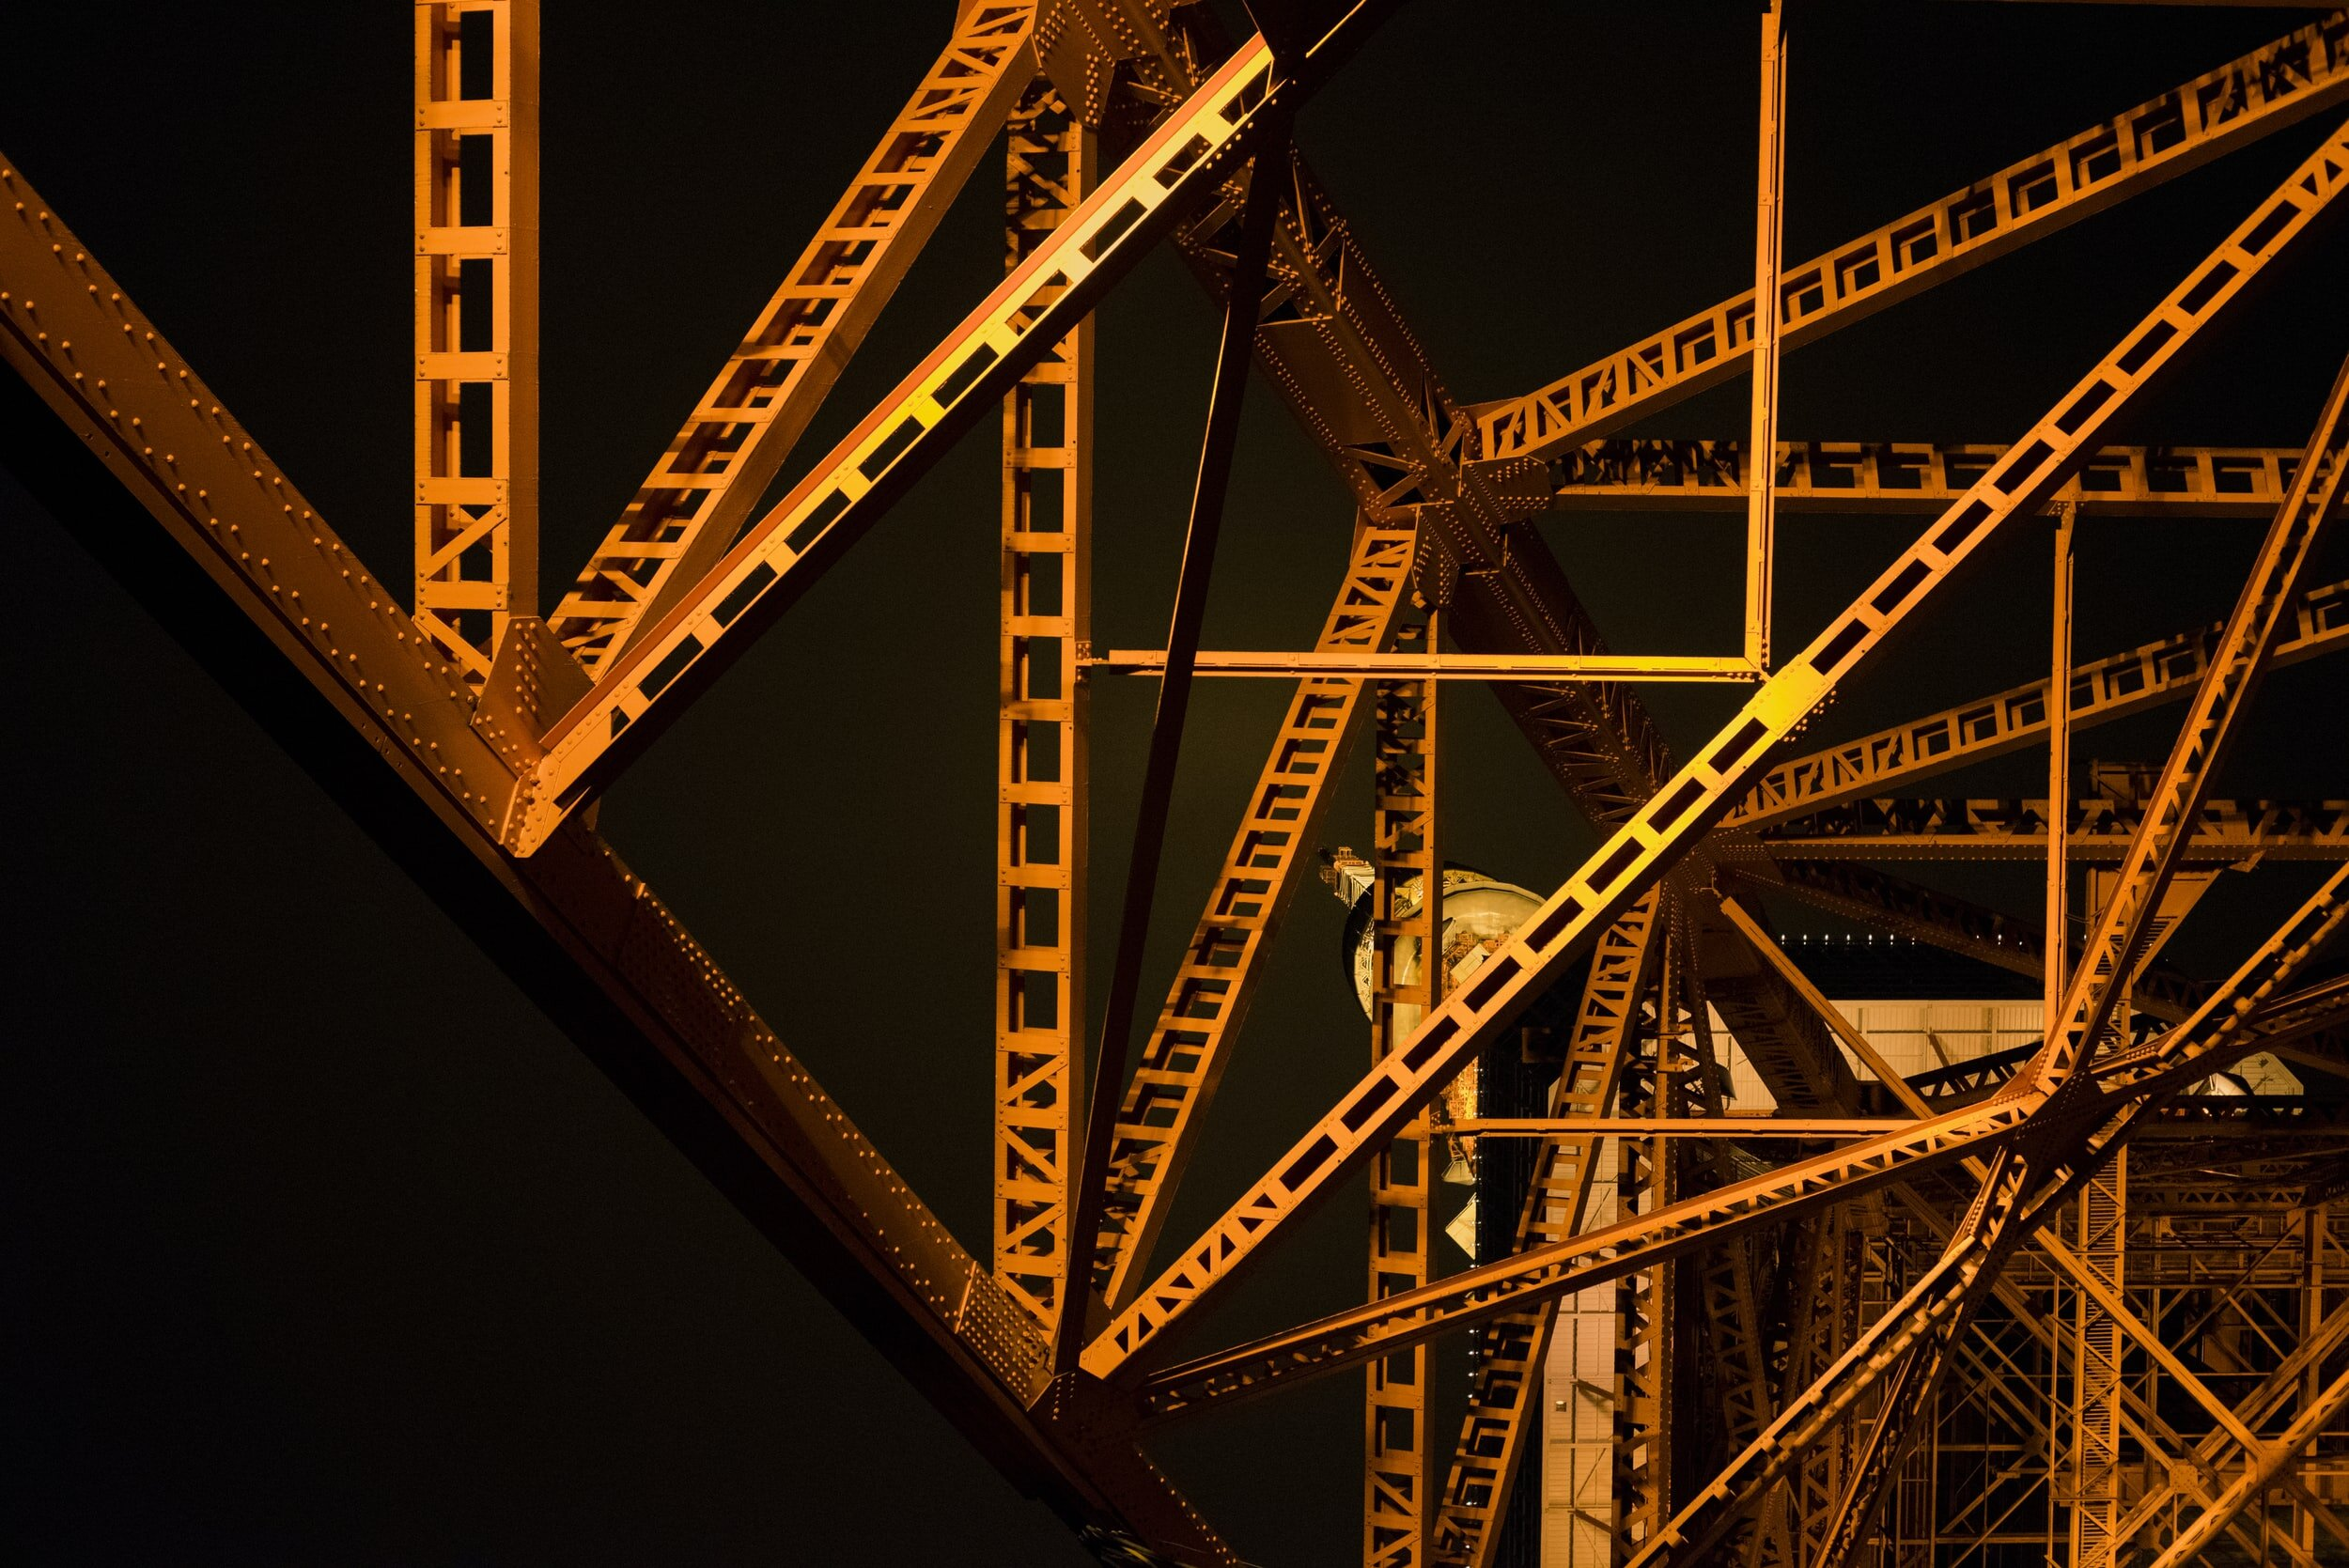 Scala is a strong, structural language. The language is operated like building the strong structure of a bridge.